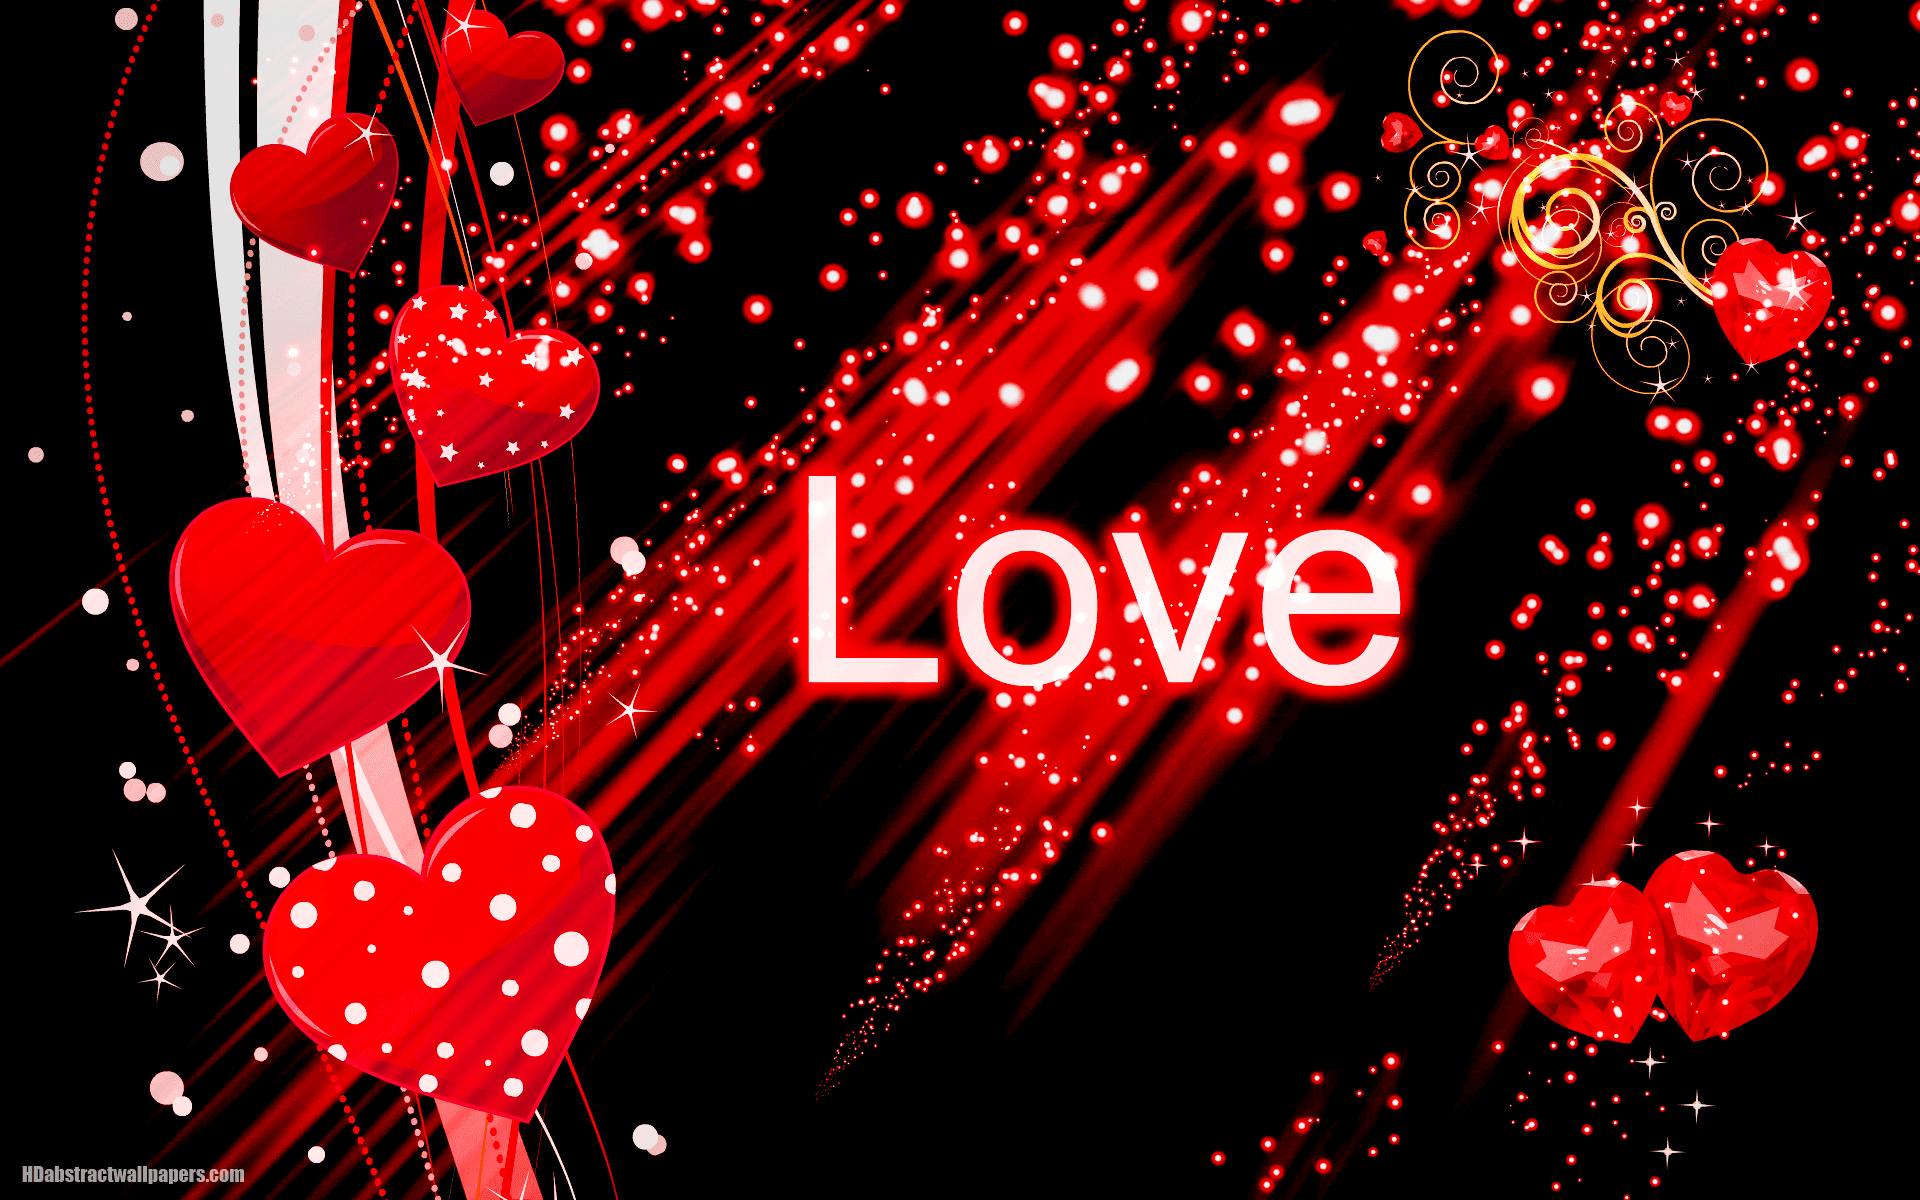 Unique Love Wallpaper Hd : Beautiful Black Love Wallpaper